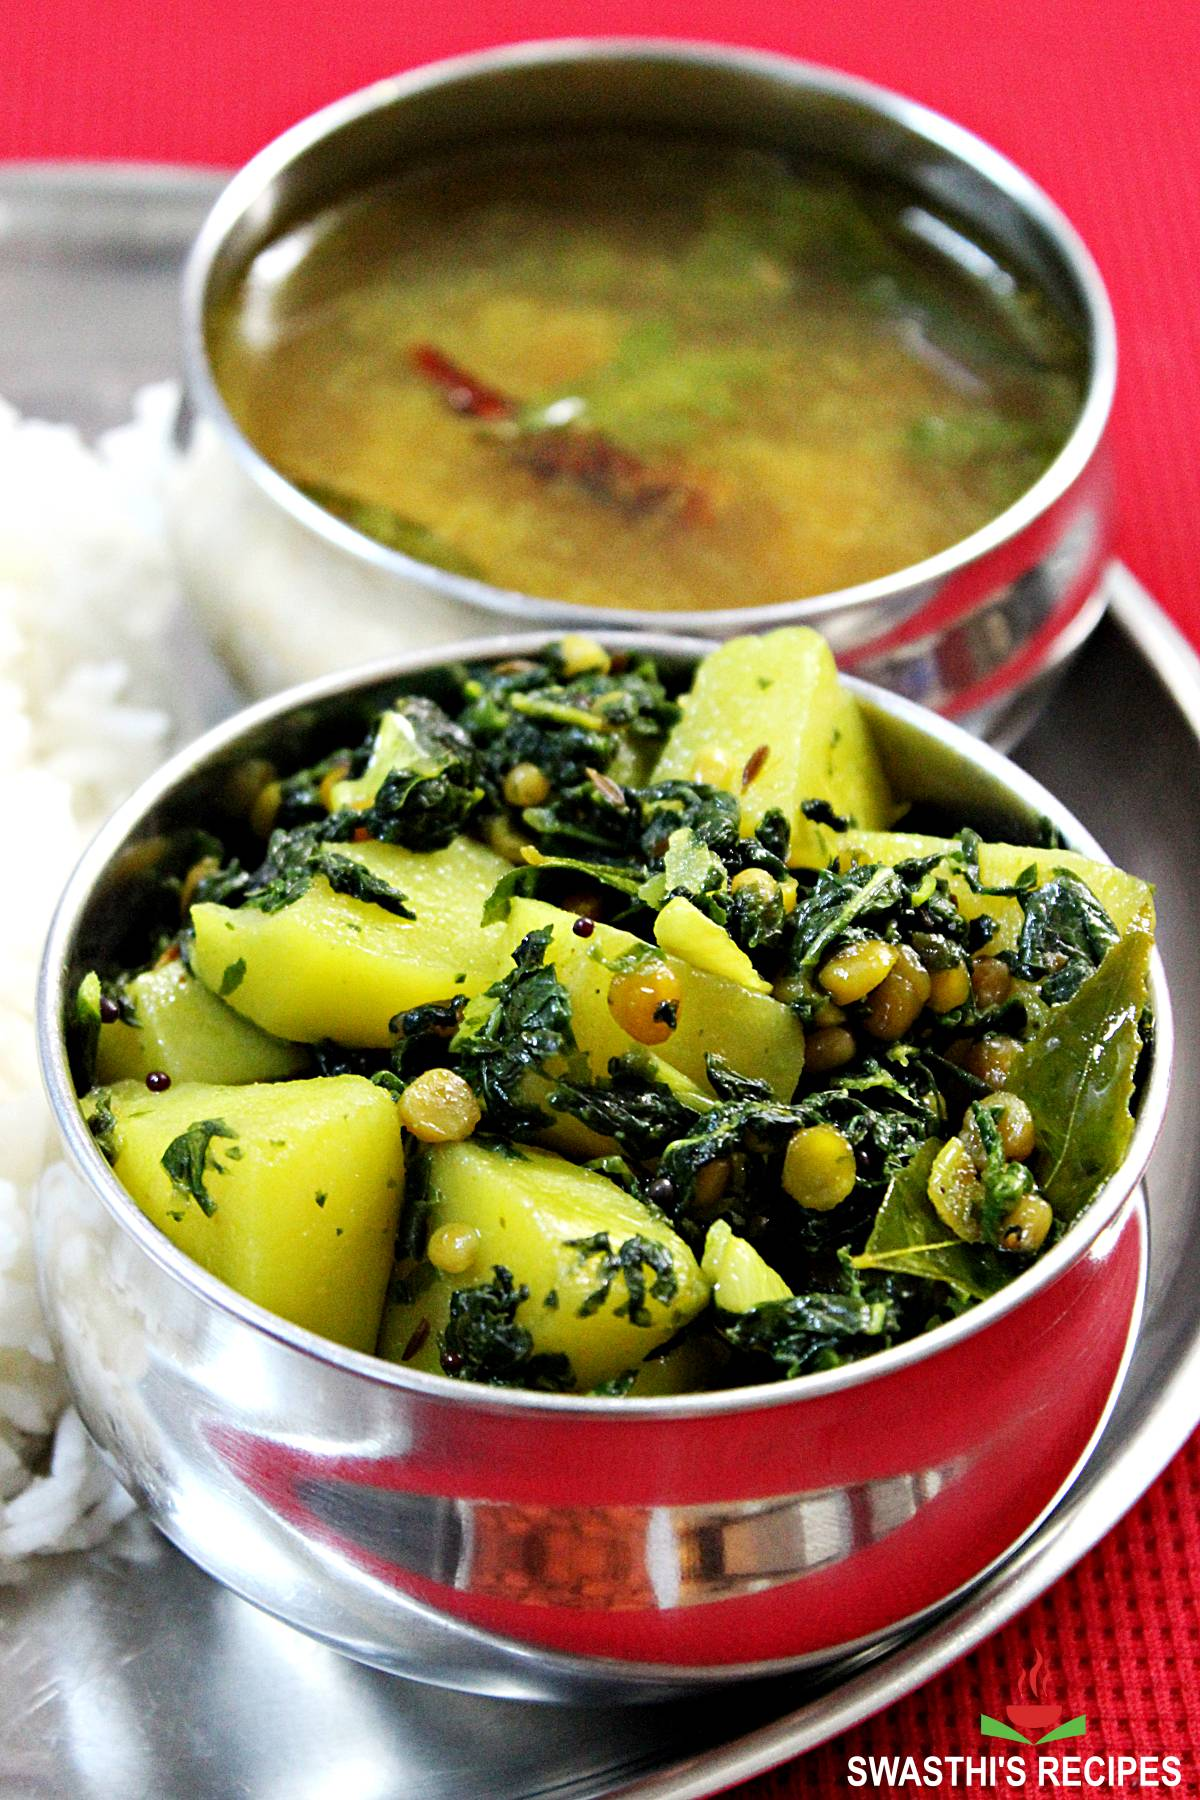 drumstick leaves stir fry made with moringa leaves